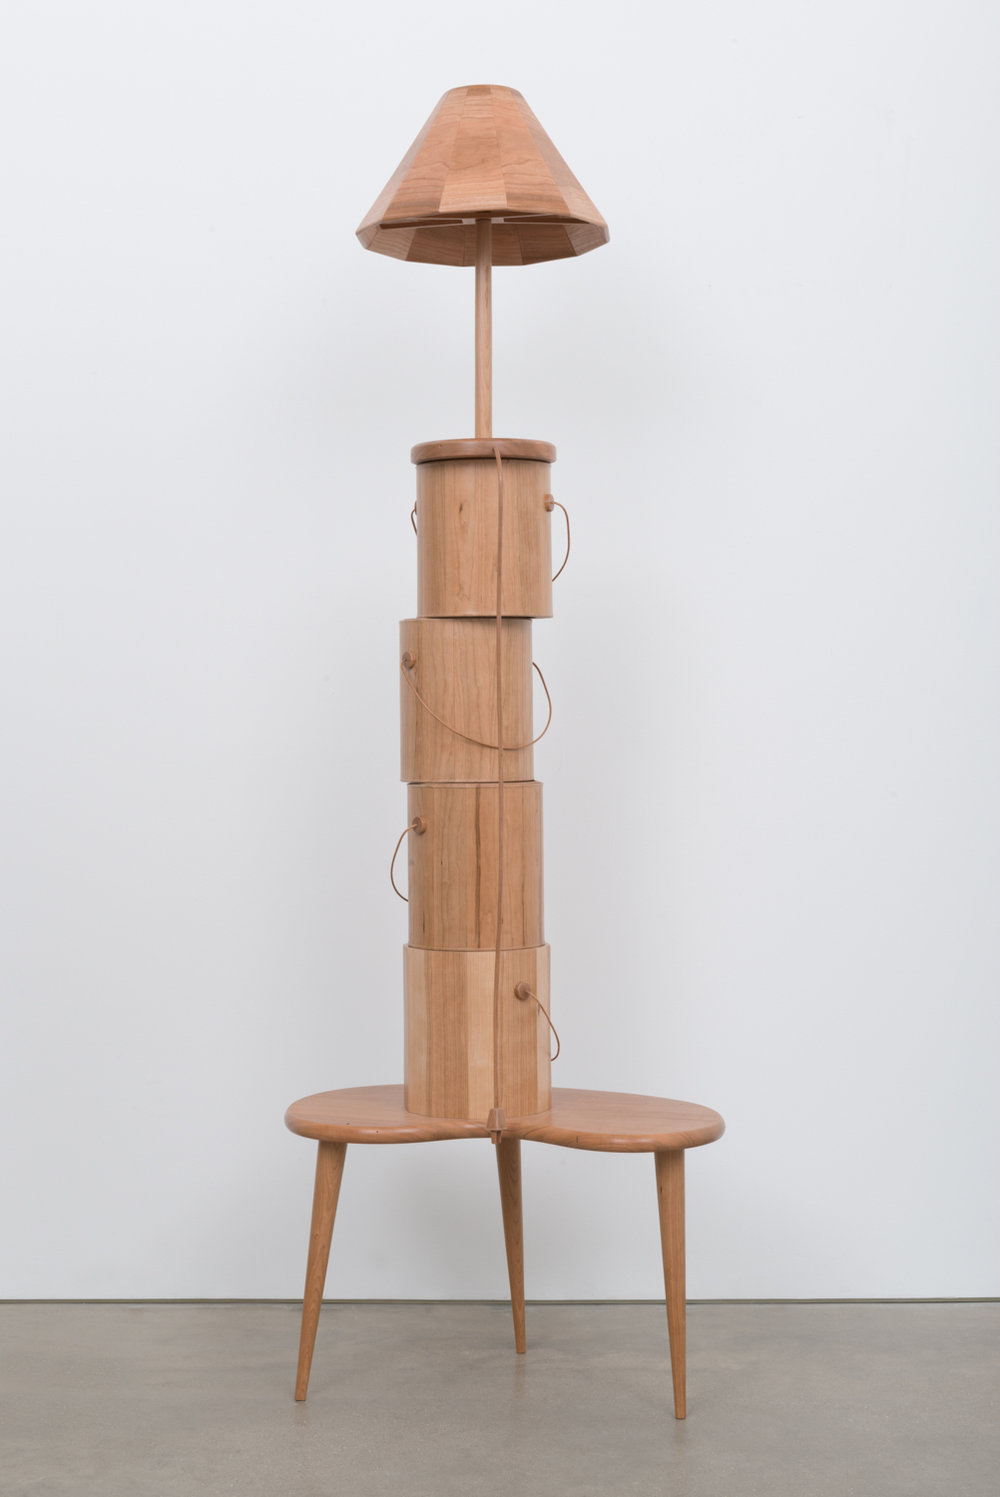 Chris Bradley  Stack (Cherry) with Nightstand  2017 Wood, steel, hardware 63h x 22w x 14d in CB228